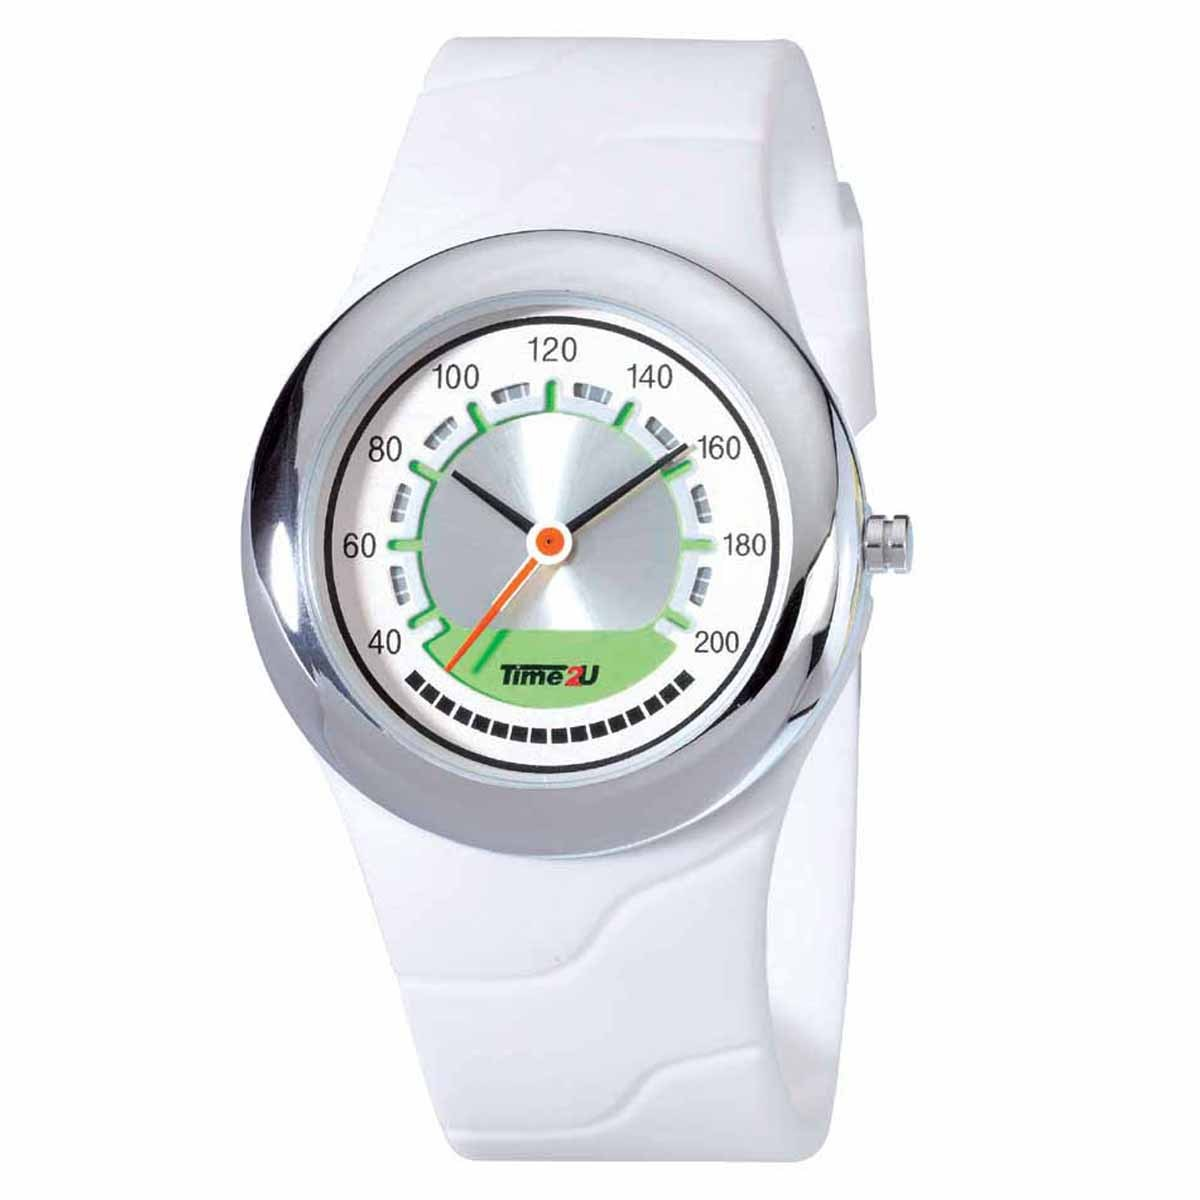 Time 2 u color series colorful watch candy fashion sports ...